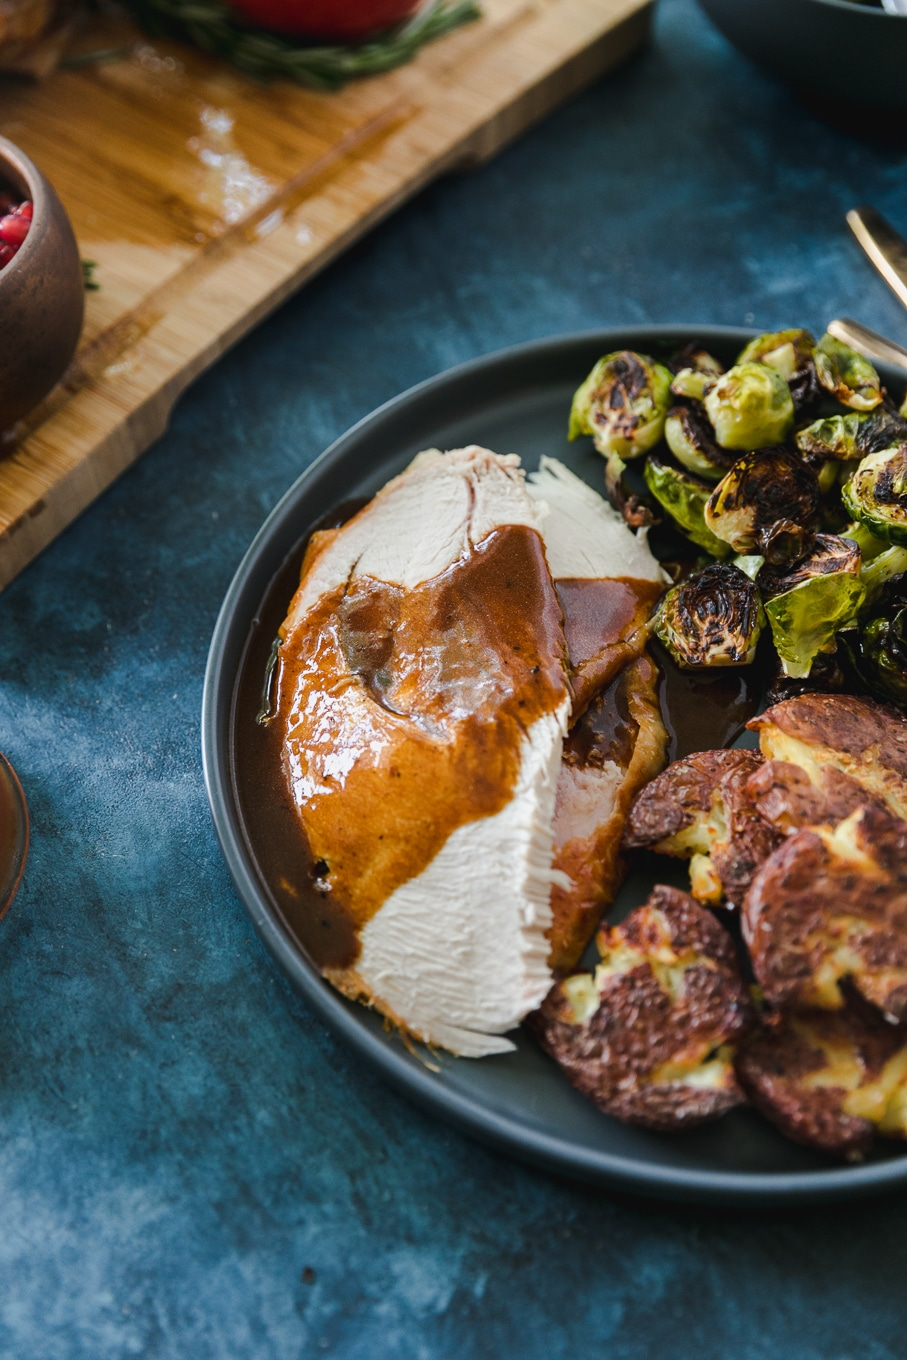 Close up shot of a plate of sliced turkey and gravy, roasted smashed potatoes, and roasted brussels against a blue background